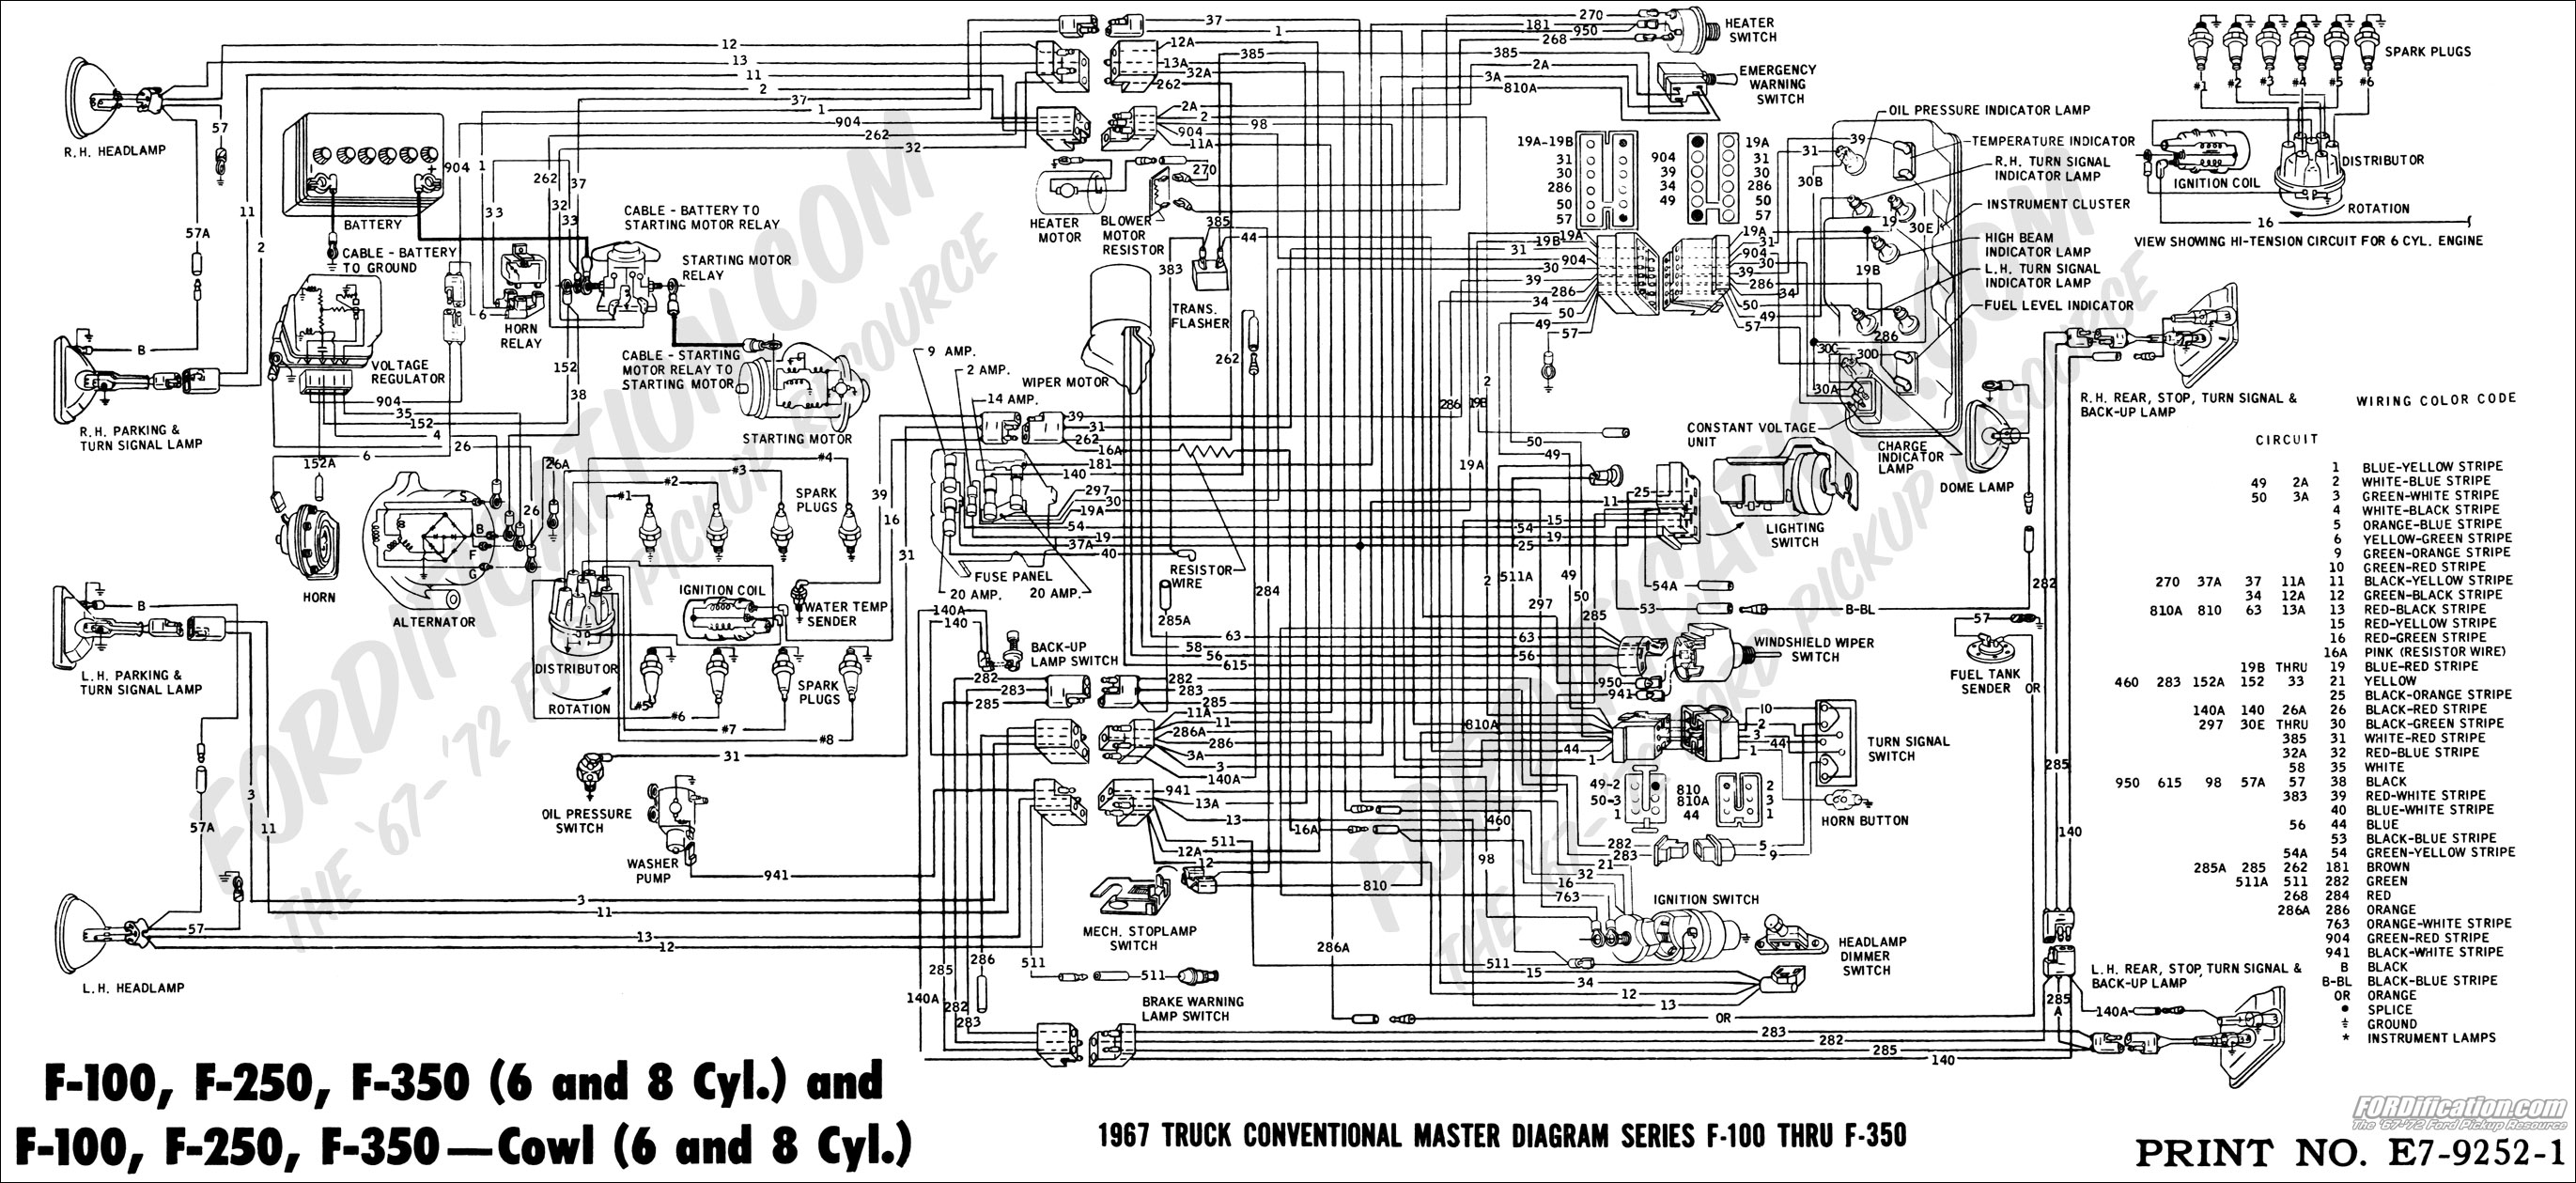 67masterdiagram ford truck technical drawings and schematics section h wiring 2000 ford f150 ignition wiring diagram at honlapkeszites.co